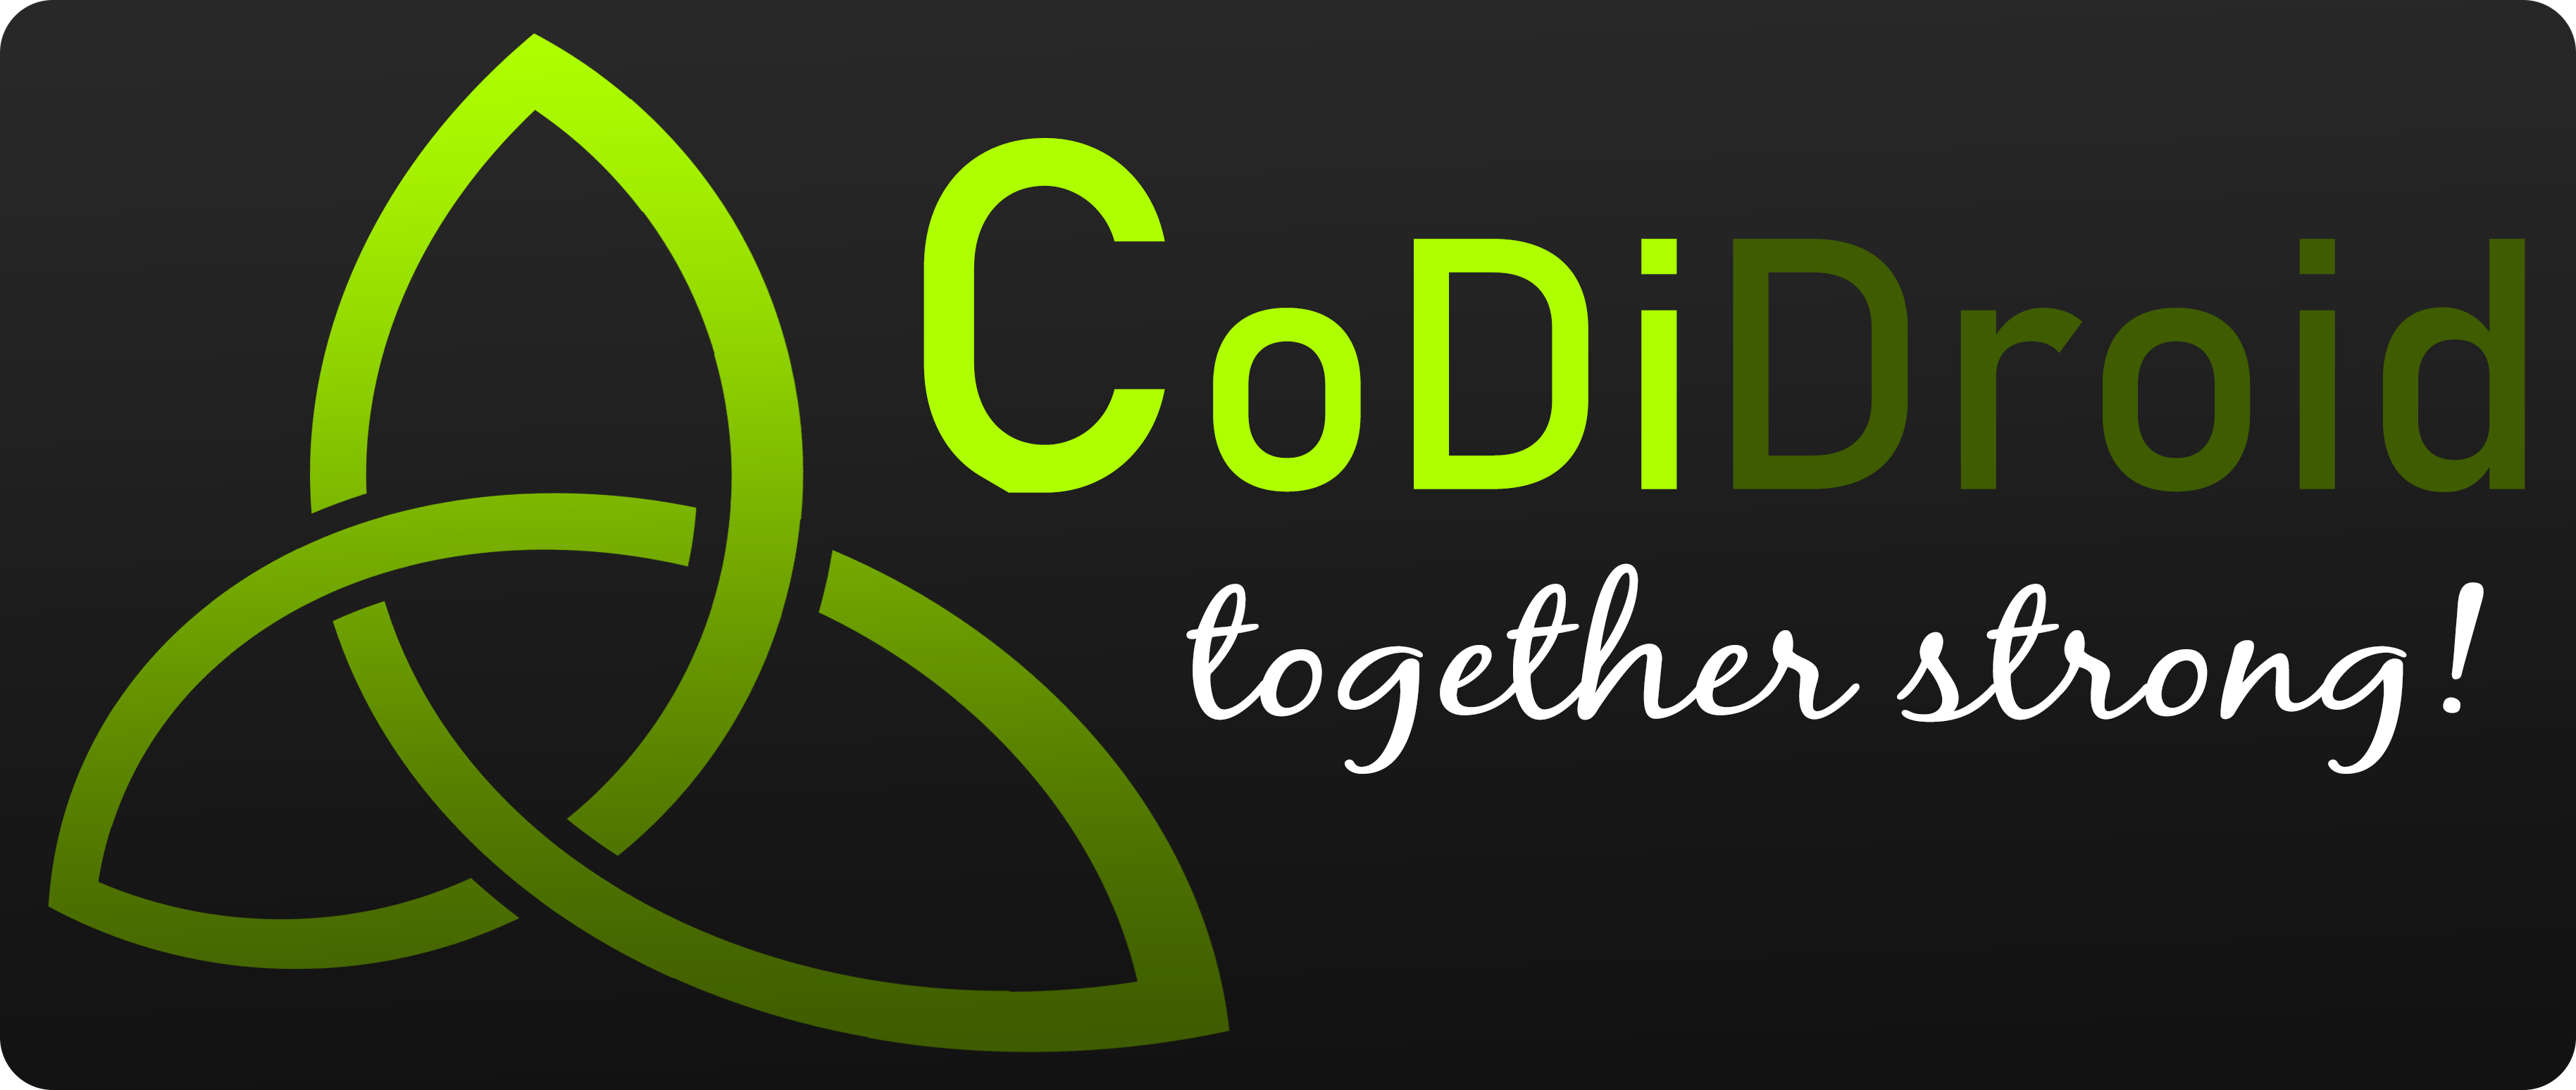 CoDiDroid | Cooperative and Distributed Android App Analysis